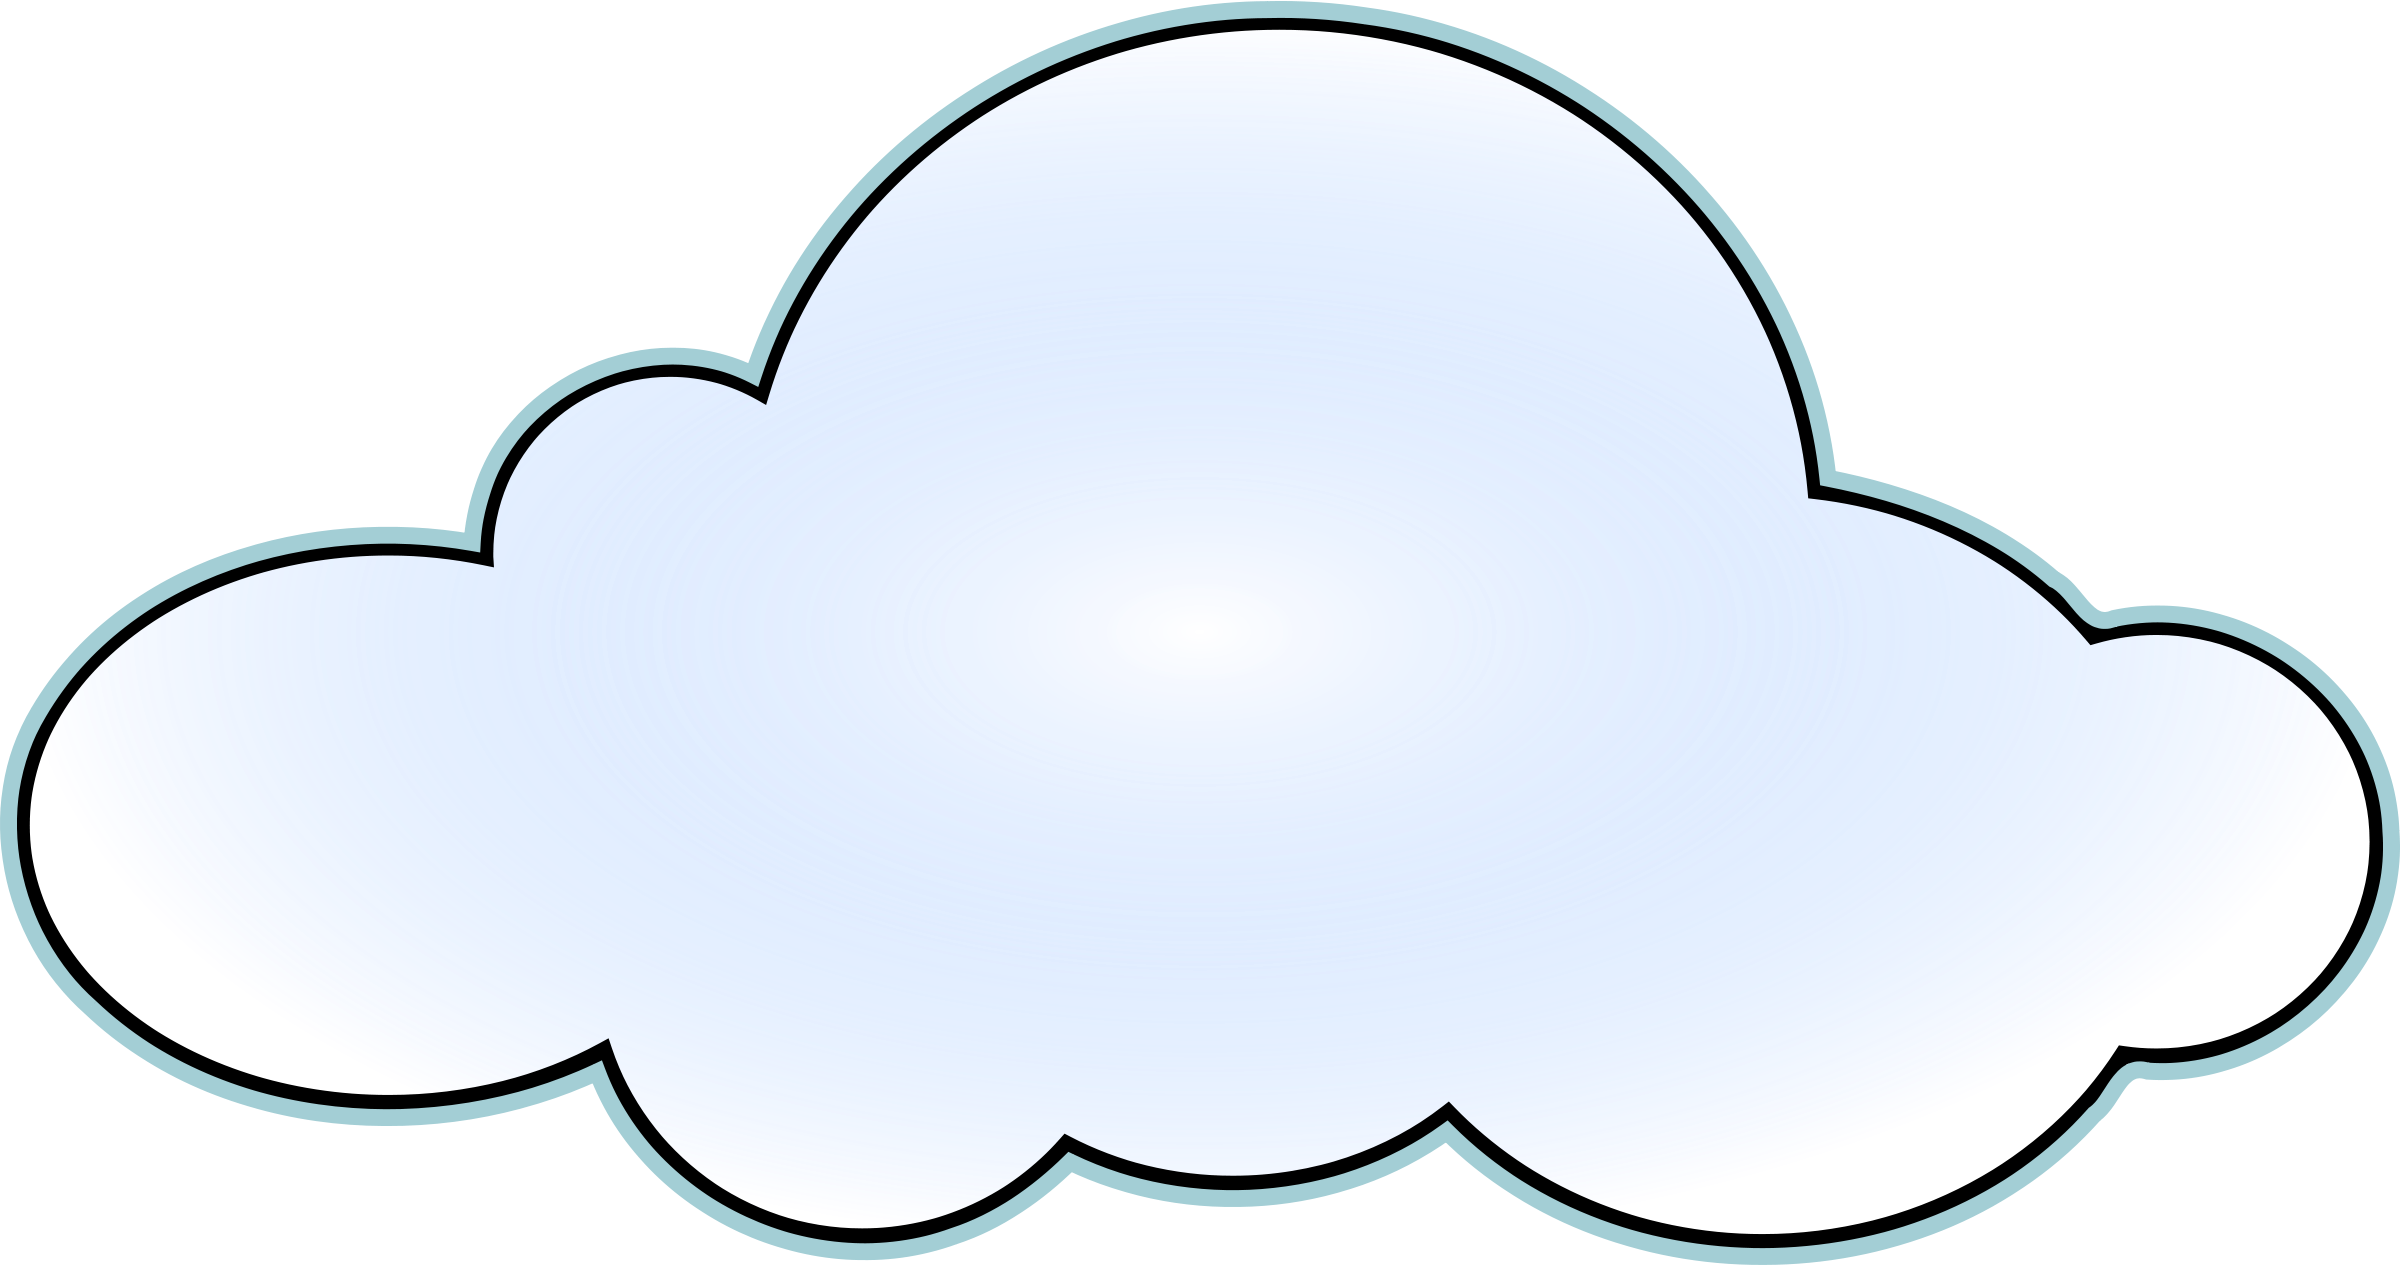 Clipart Of Clouds - clipartal